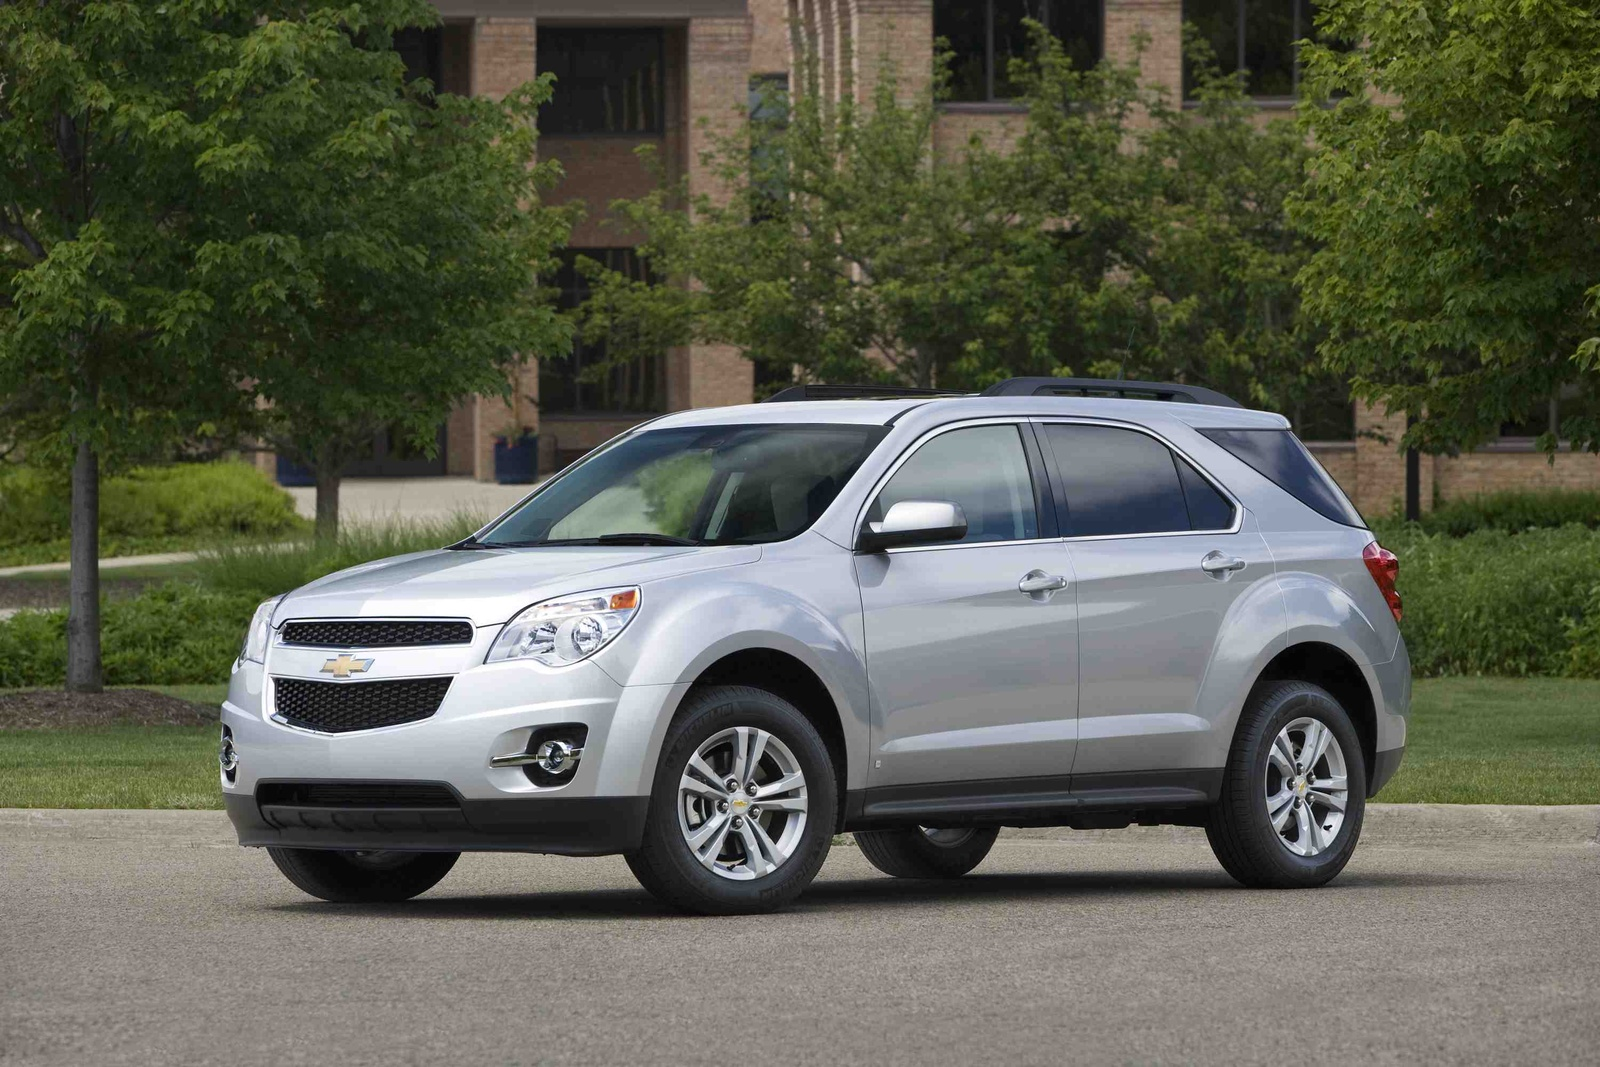 Chevrolet Equinox photo 07